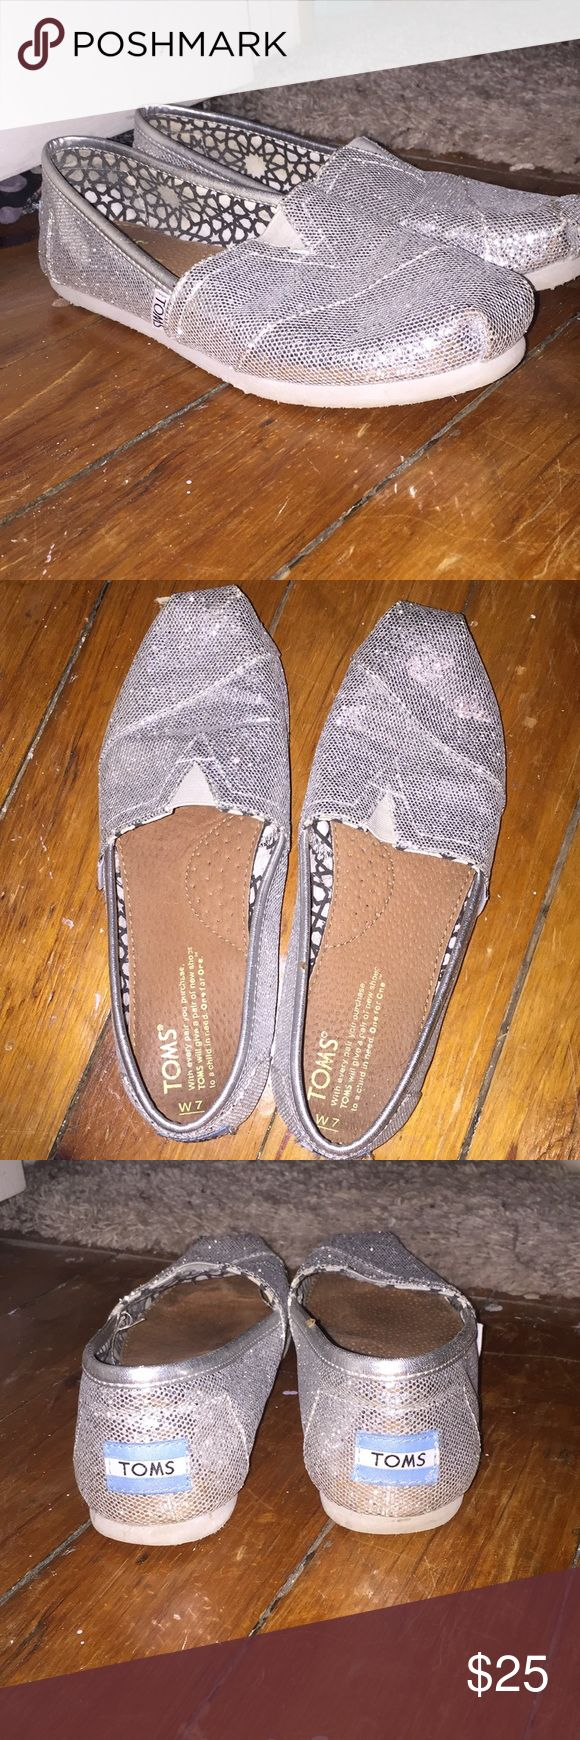 Silver Glitter Toms Silver glitter Toms. Slight worn, as depicted. Barely used Toms Shoes Flats & Loafers